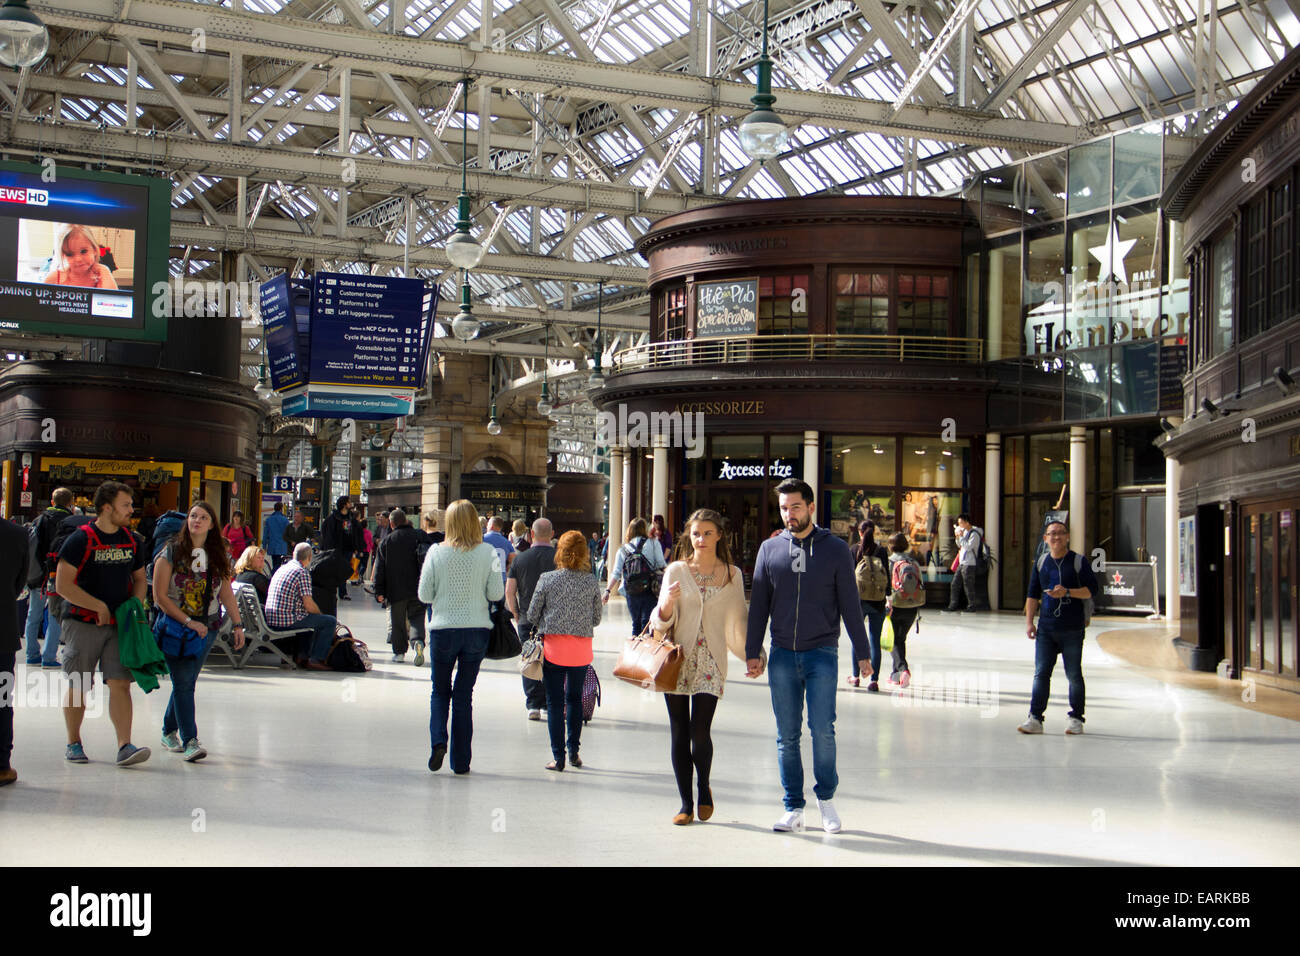 Grand Central Station Concourse in Glasgow  - Scotland - Stock Image